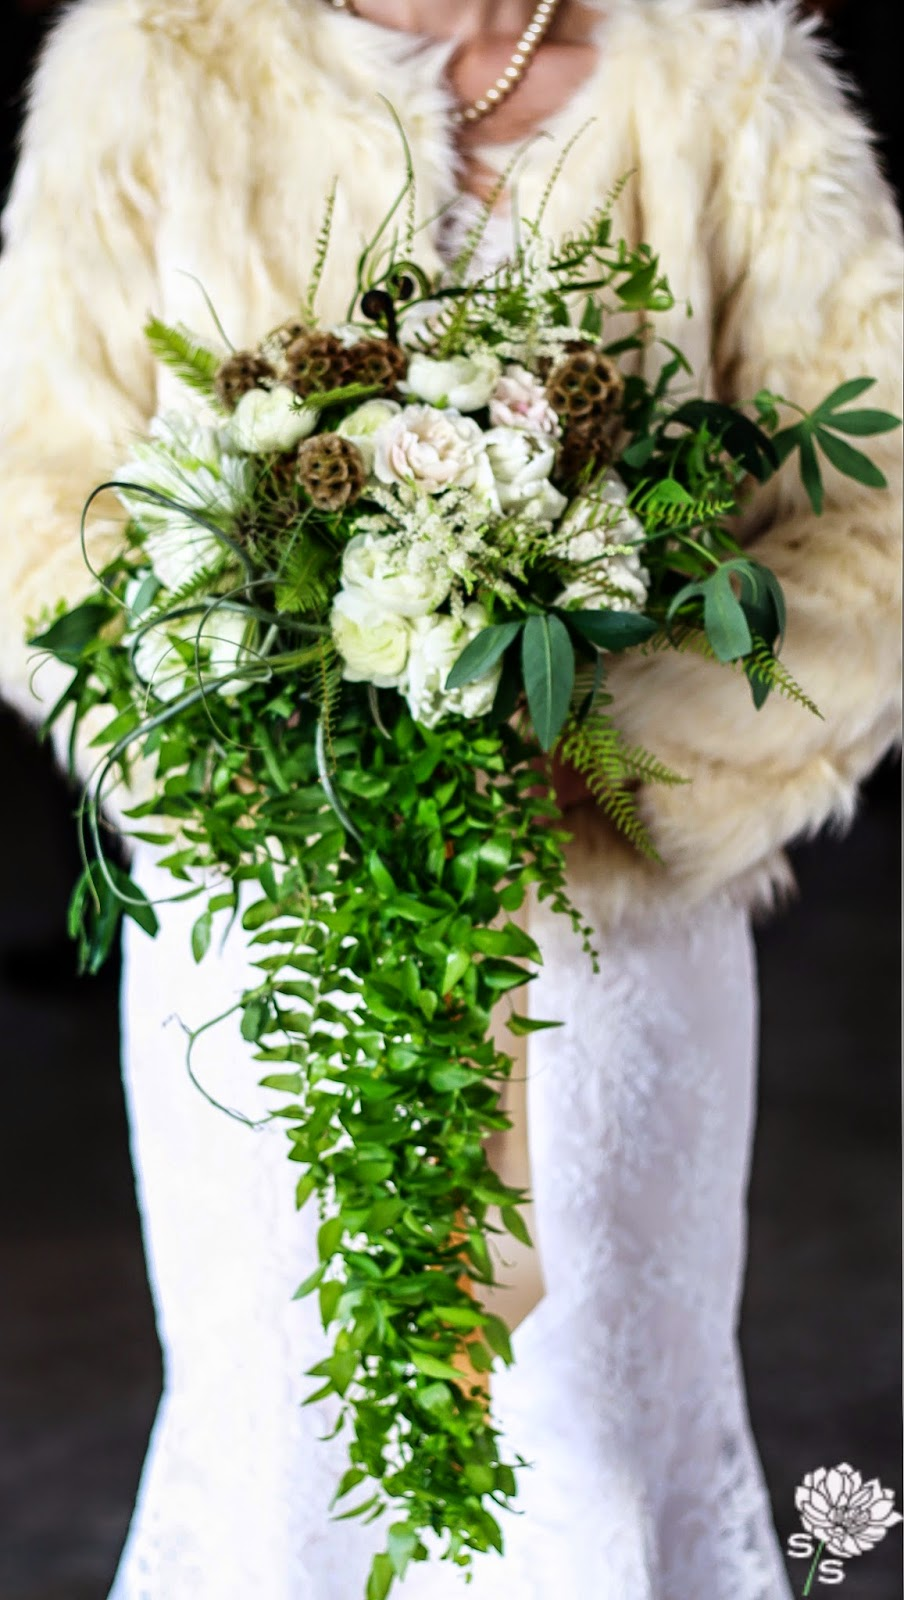 The Roundhouse Wedding - Beacon, NY - Hudson Valley Wedding - Bride's Bouquet - Wedding Flowers - Splendid Stems Floral Designs